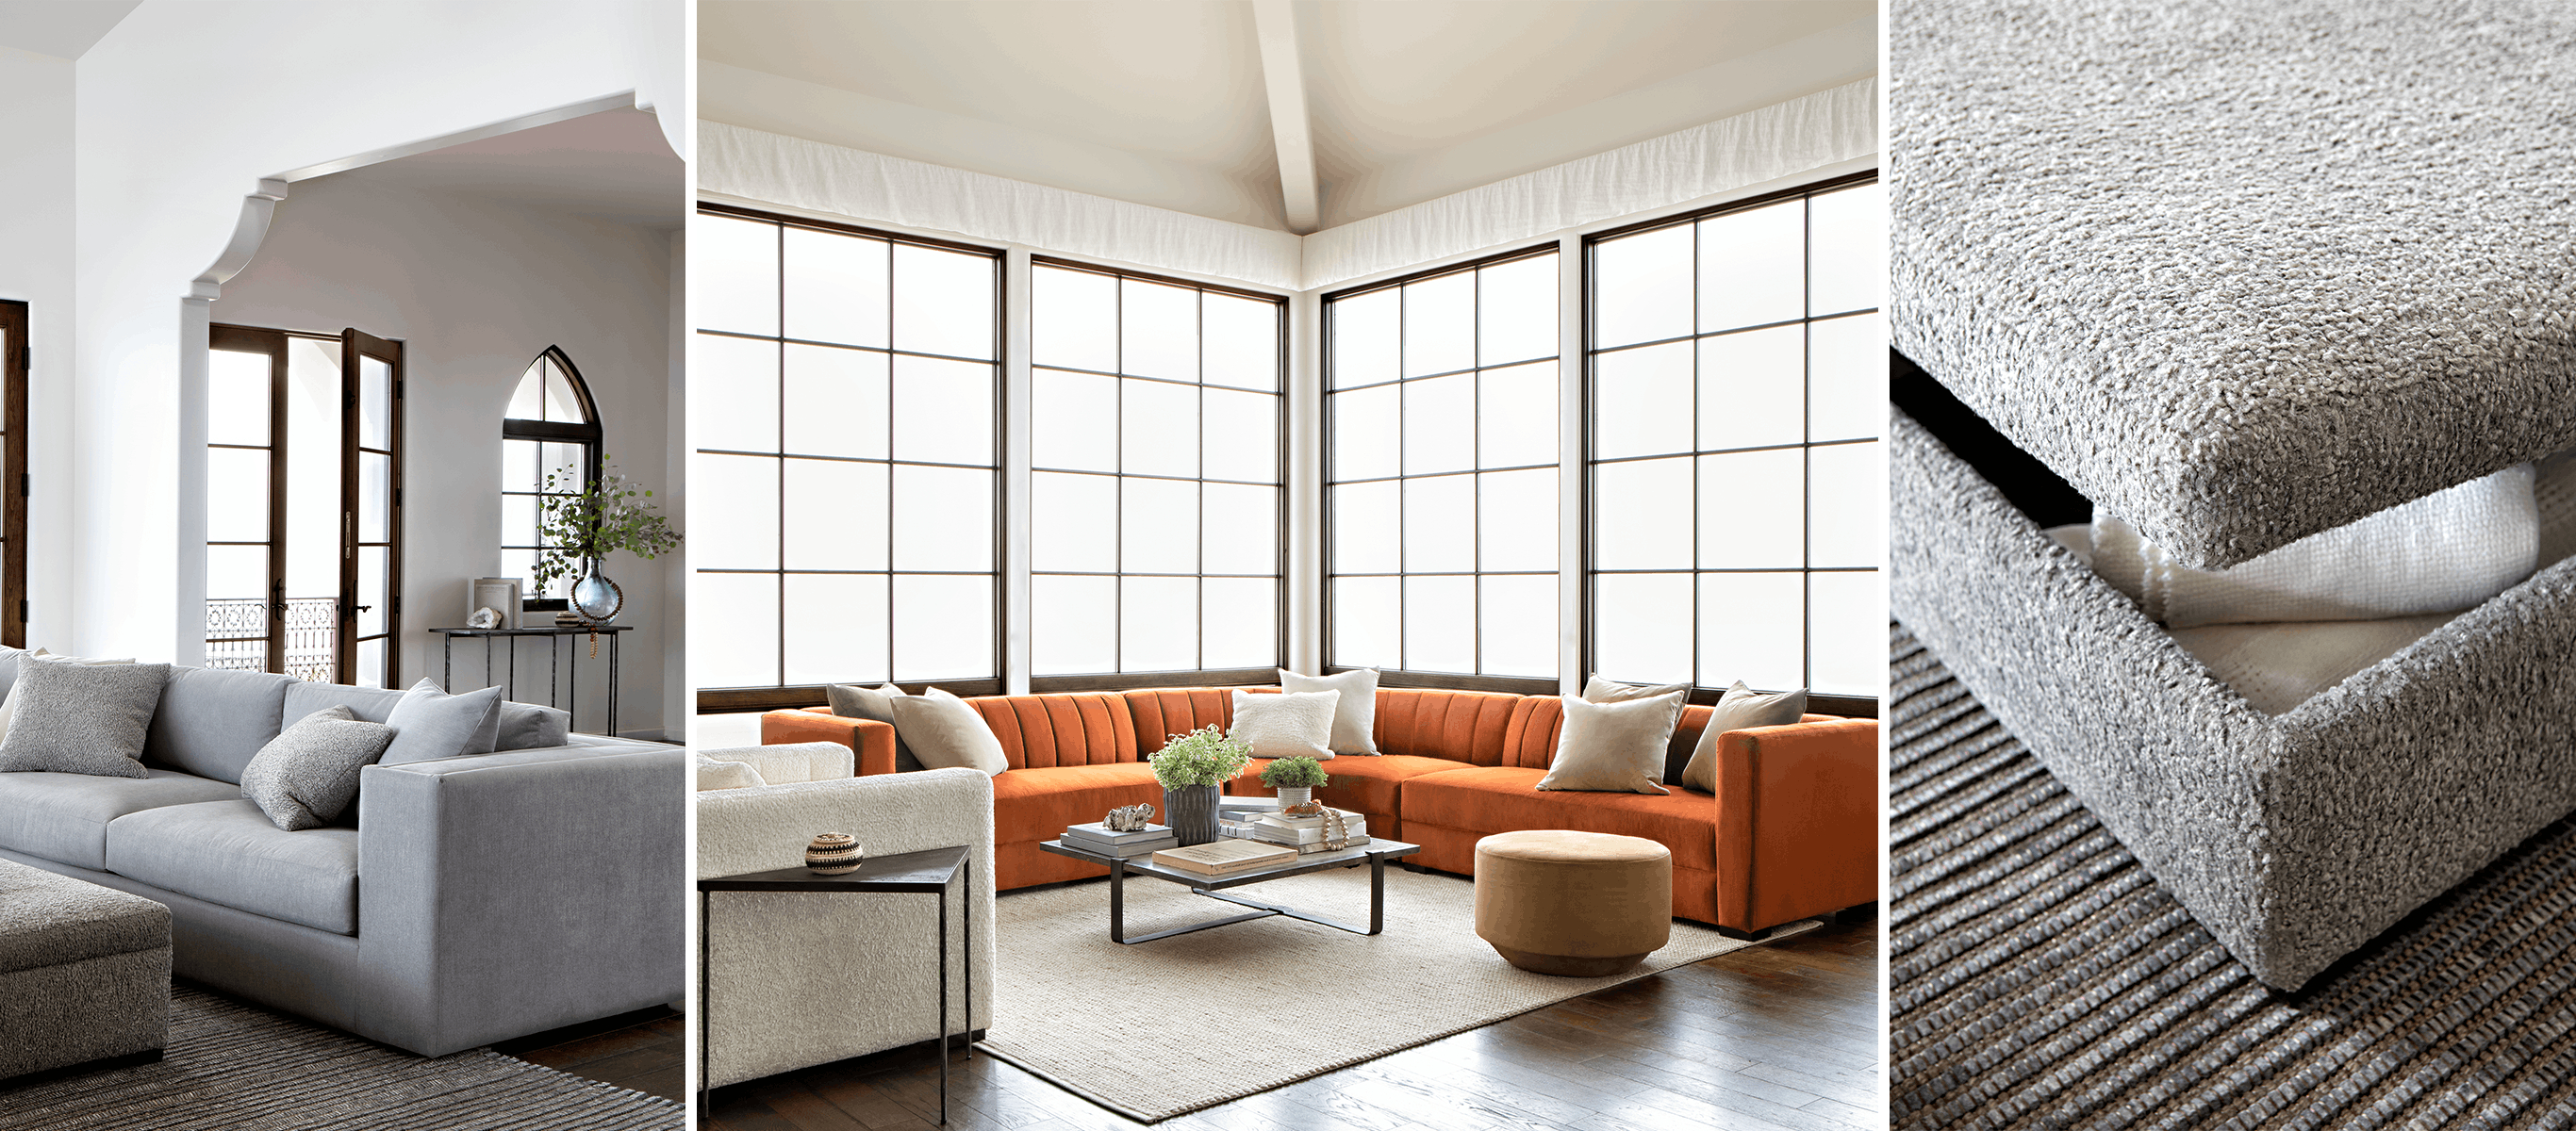 Nate Berkus Just Launched A Home Collection With Hubby Jeremiah With Recent Liv Arm Sofa Chairs By Nate Berkus And Jeremiah Brent (View 20 of 20)